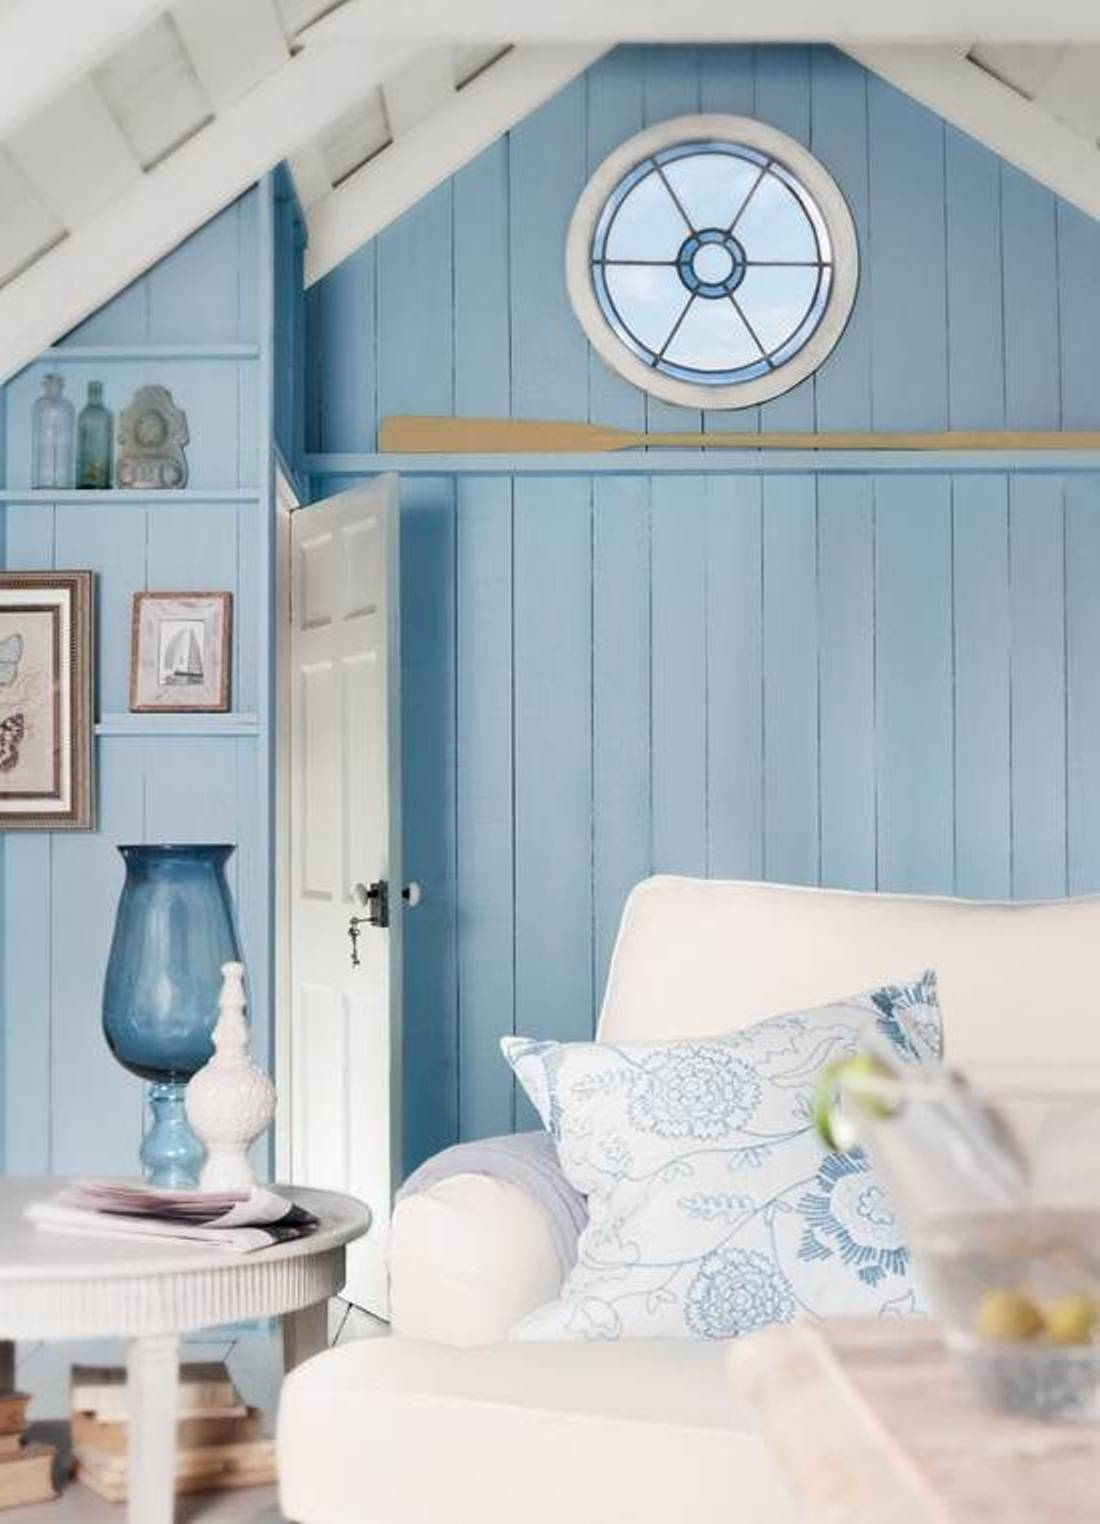 Beach Cottage Wall Decor Ideas With Regard To Current Beach Cottage Wall Decors (View 8 of 25)